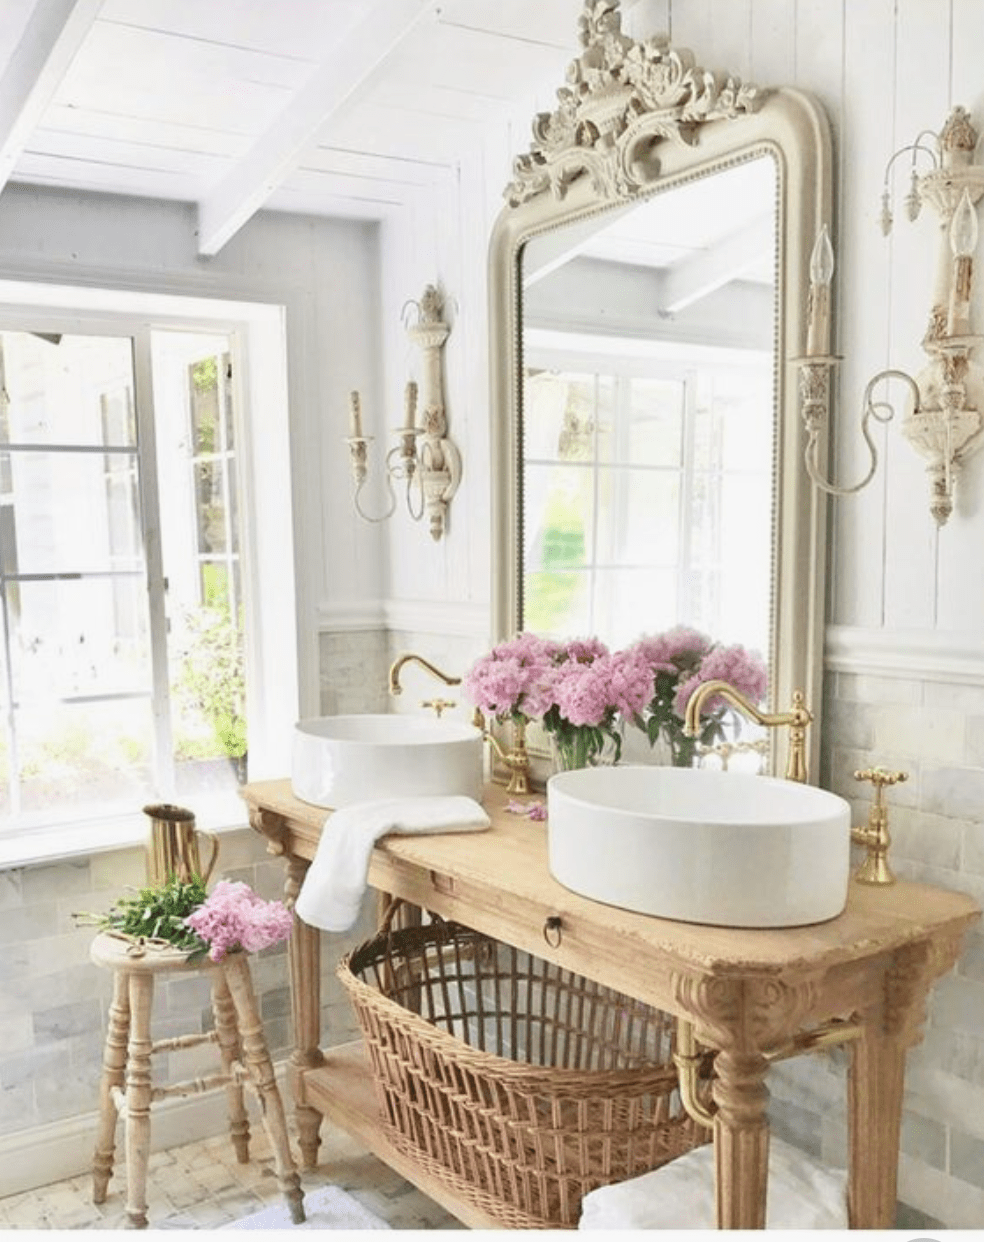 The 15 Most Beautiful Bathrooms on Pinterest - Sanctuary ... on Beautiful Home Decor  id=17930